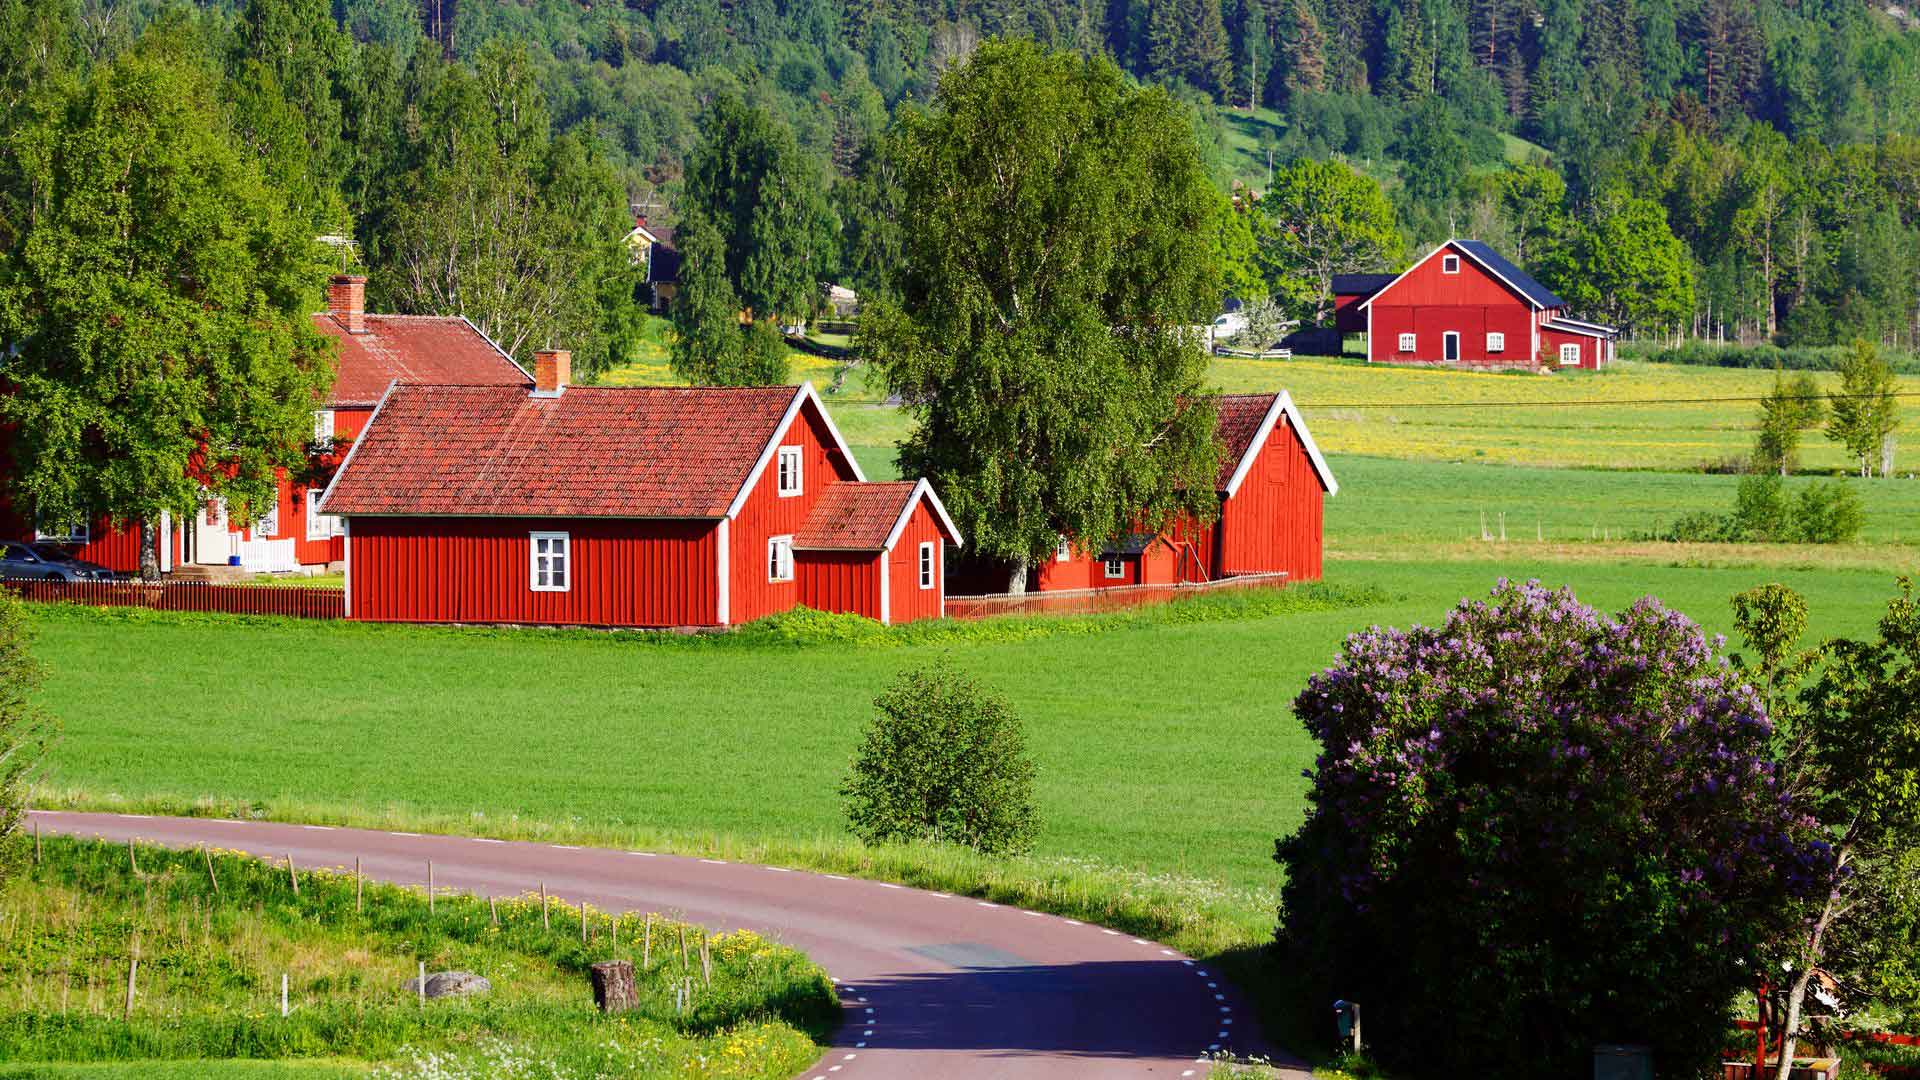 Pretty Swedish countryside